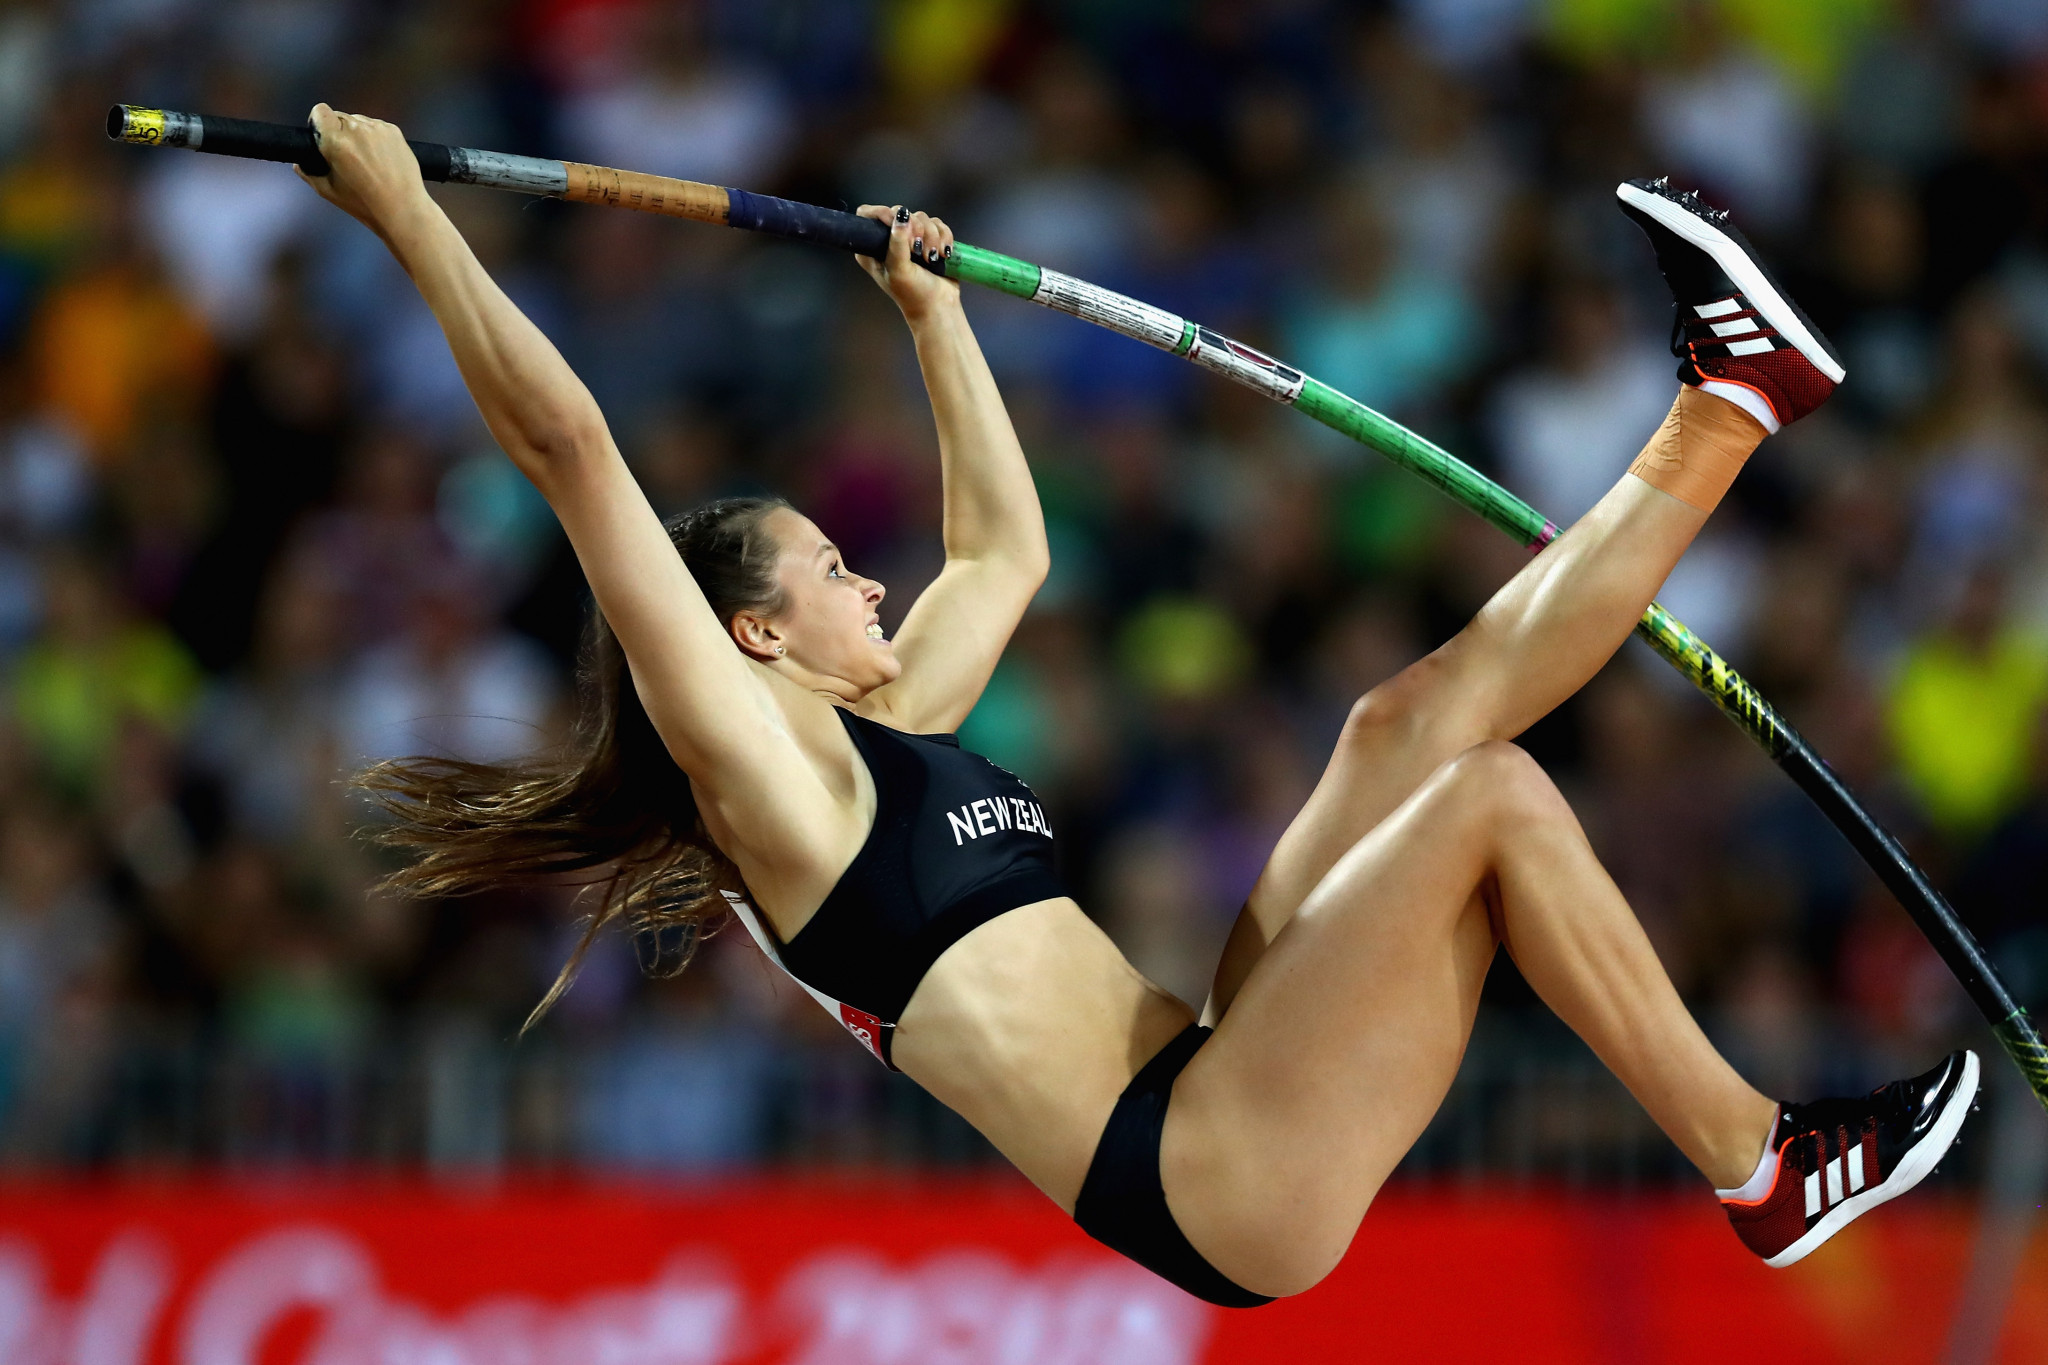 Rio 2016 Olympic pole vault bronze medallist Eliza McCartney had previously competed for New Zealand at a Summer Universiade ©Getty Images